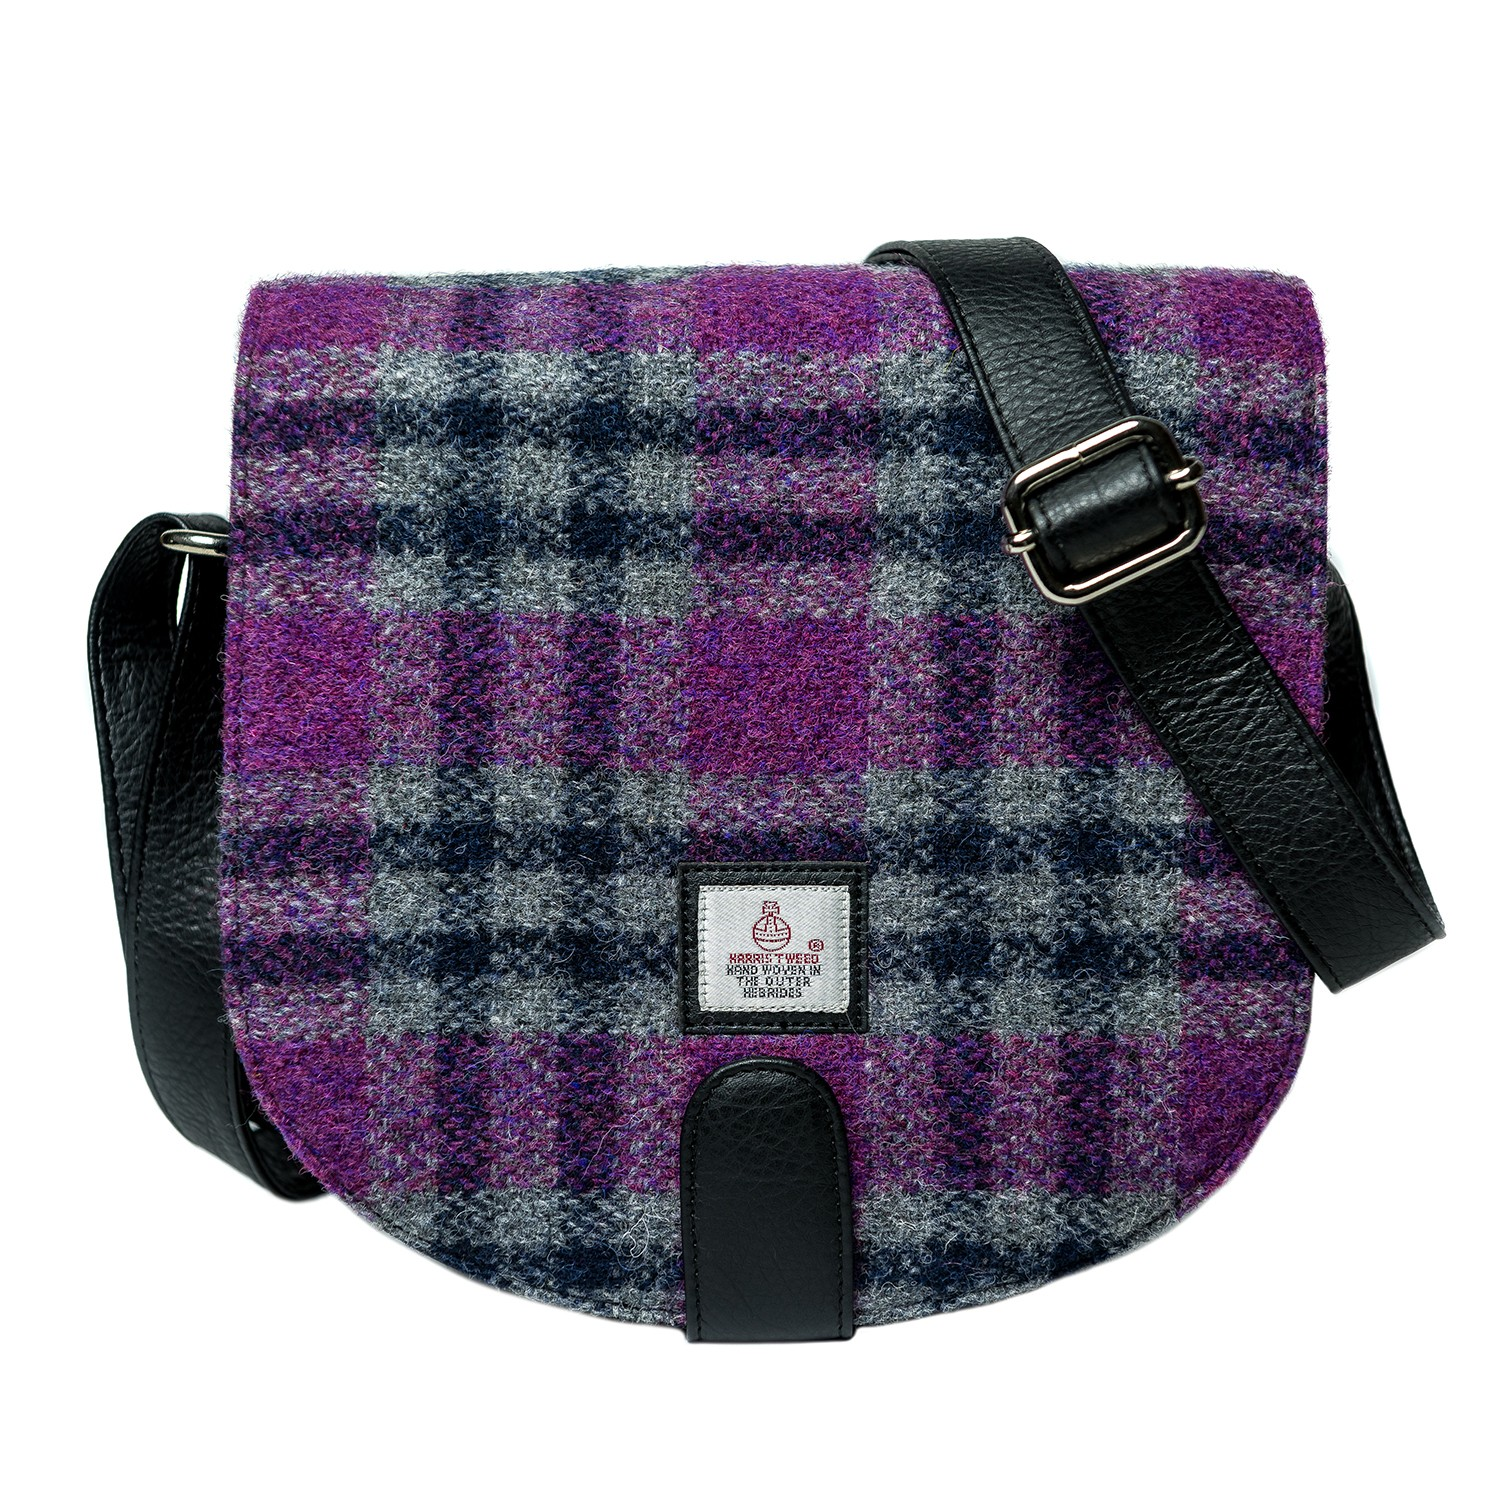 Maccessori Harris Tweed Small Cross Body Saddle Bag in Pink Check